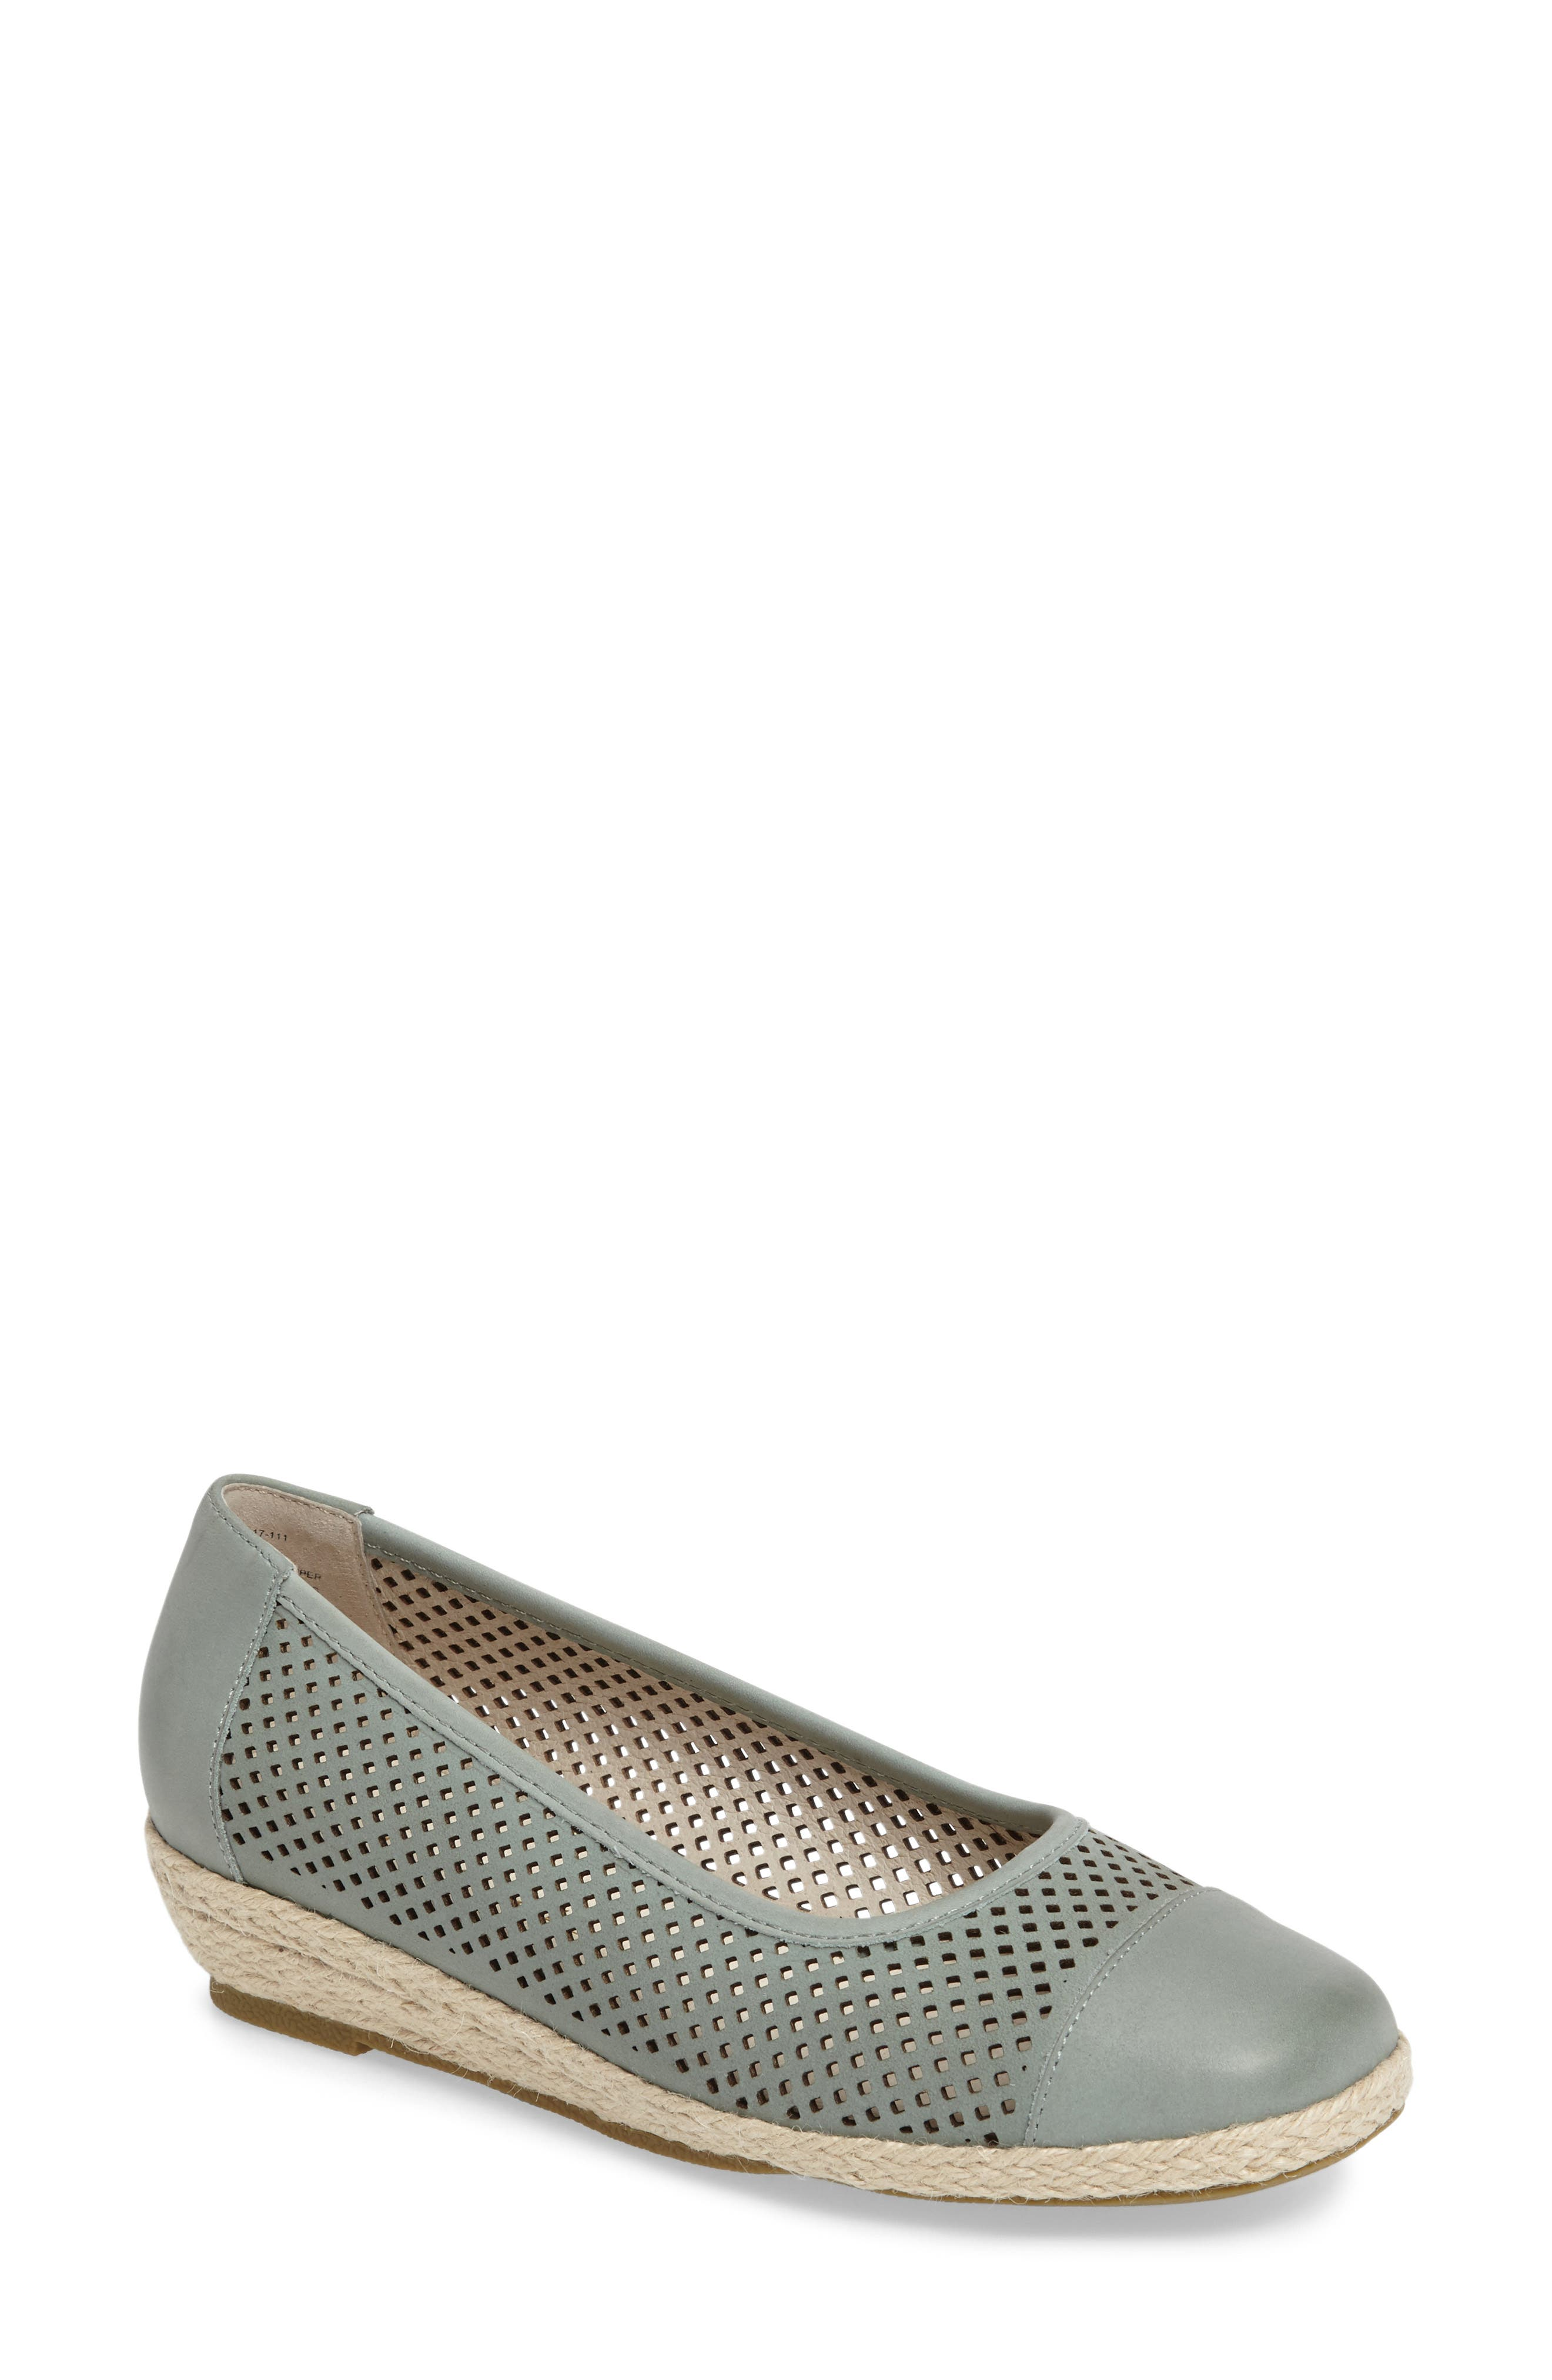 David Tate Nadine Perforated Espadrille Wedge (Women)